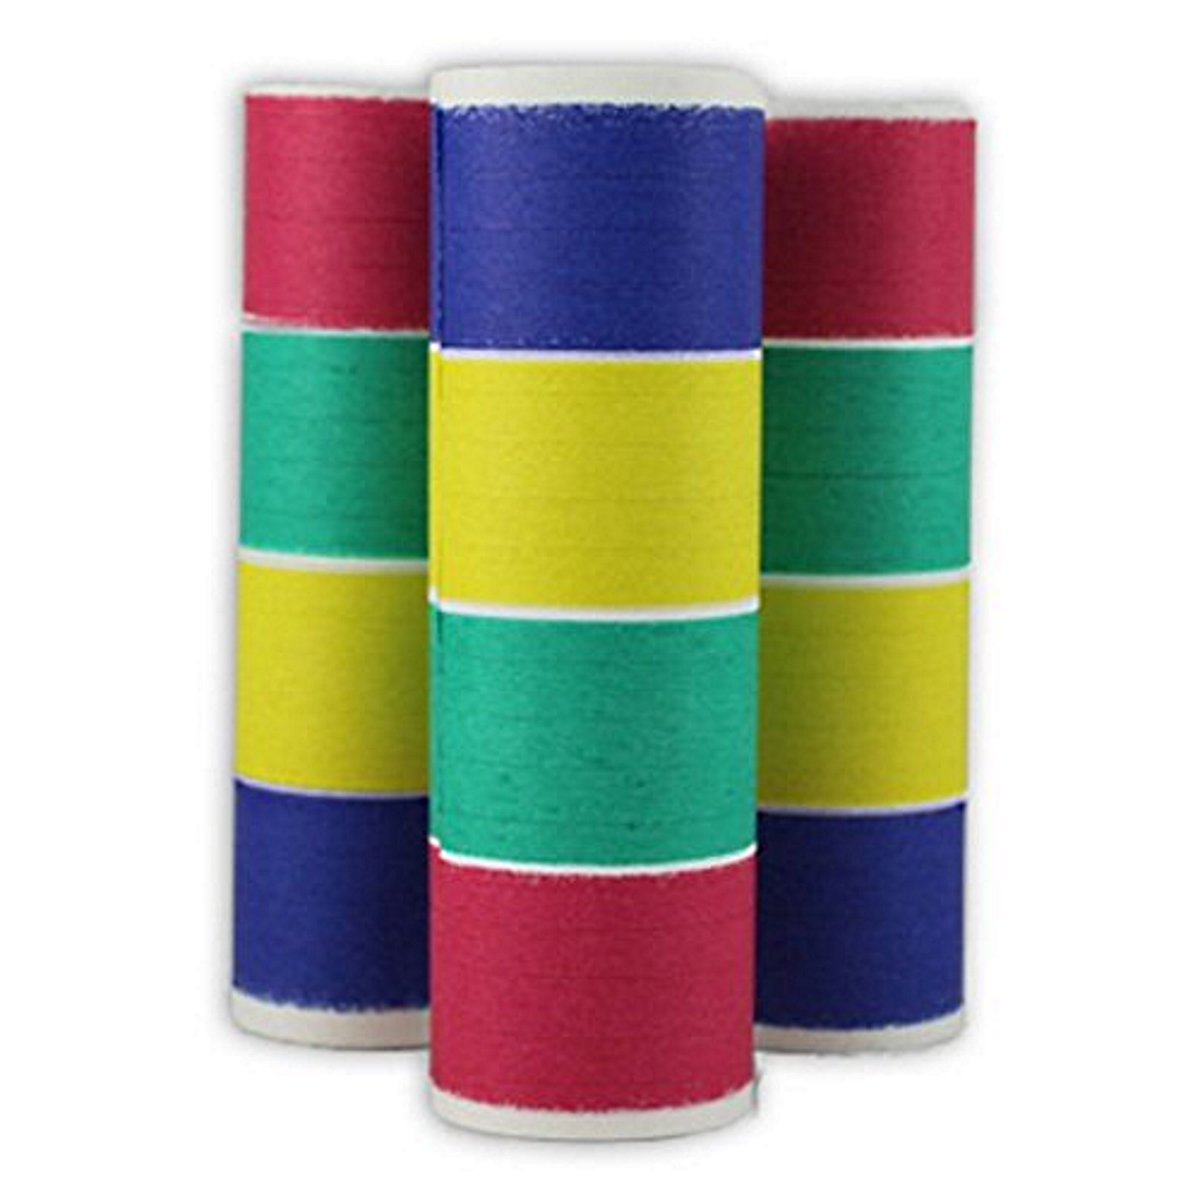 50 Rolls of Multi-Color Serpentine Throws by PTMFG